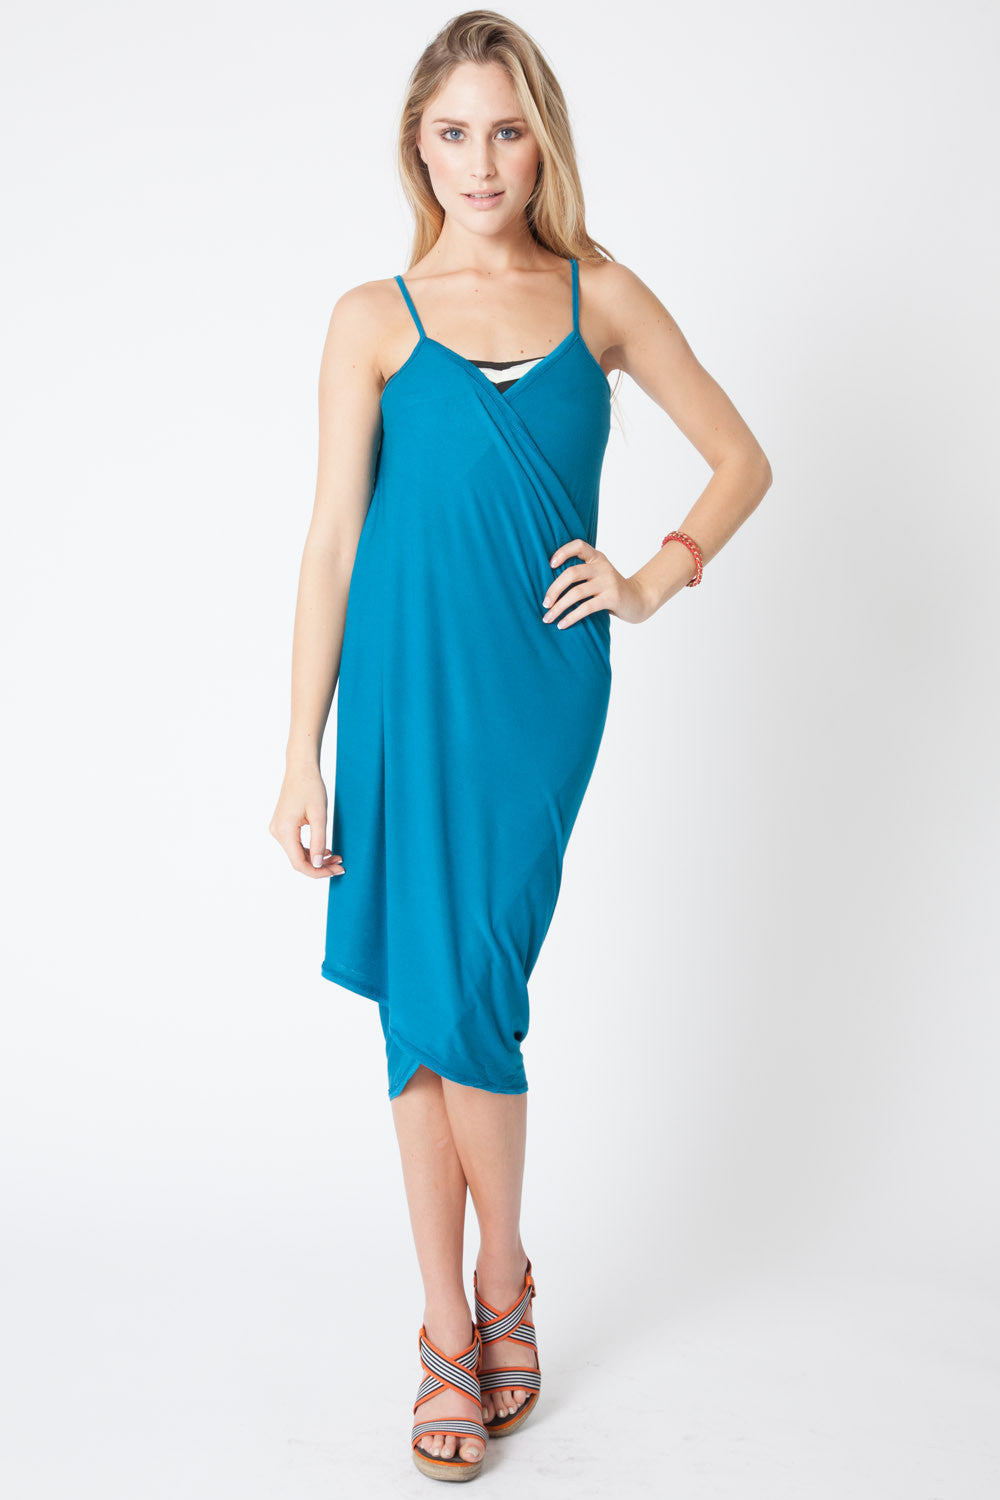 Convertible Beach Wrap Dress in Dark Turquoise